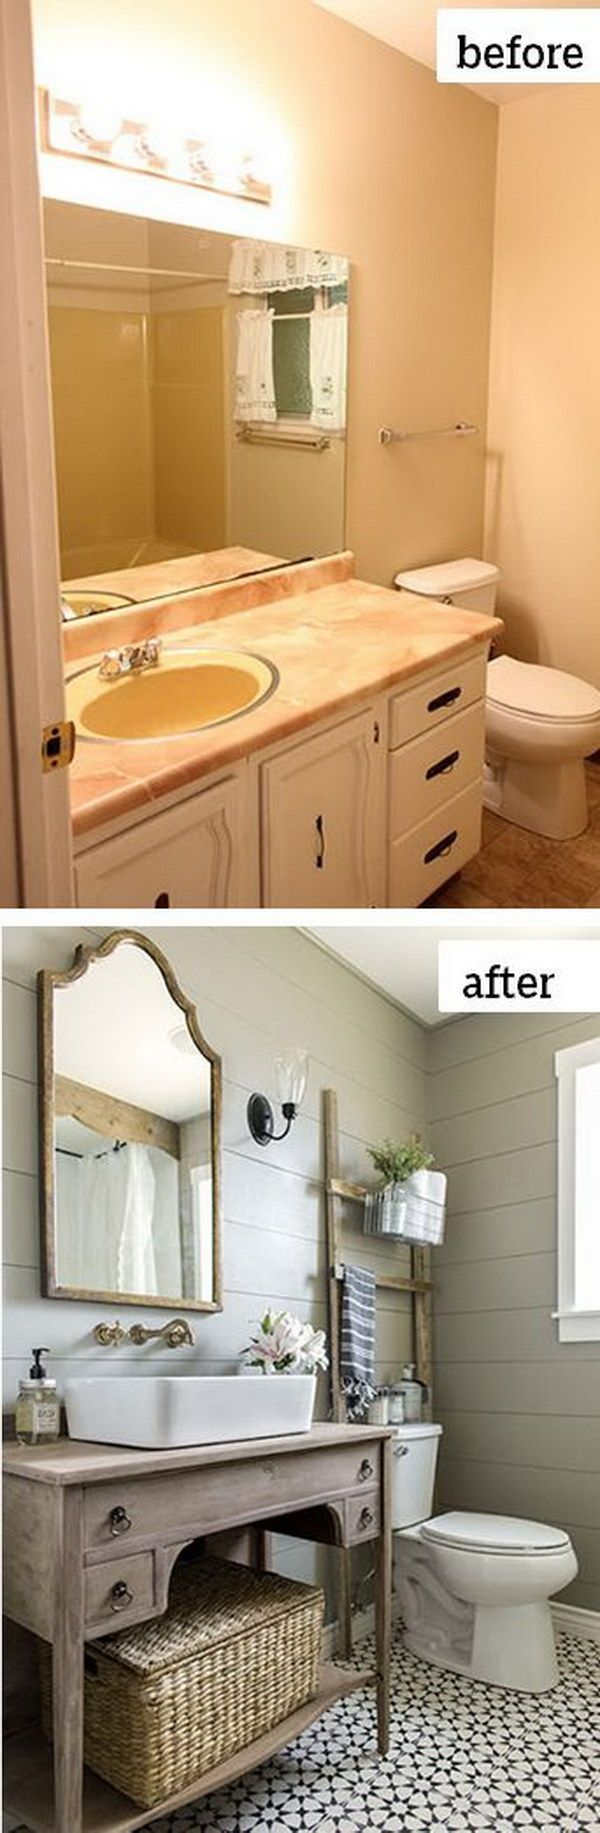 Bathroom Remodeling Ideas Pictures best 25+ small cottage bathrooms ideas on pinterest | small